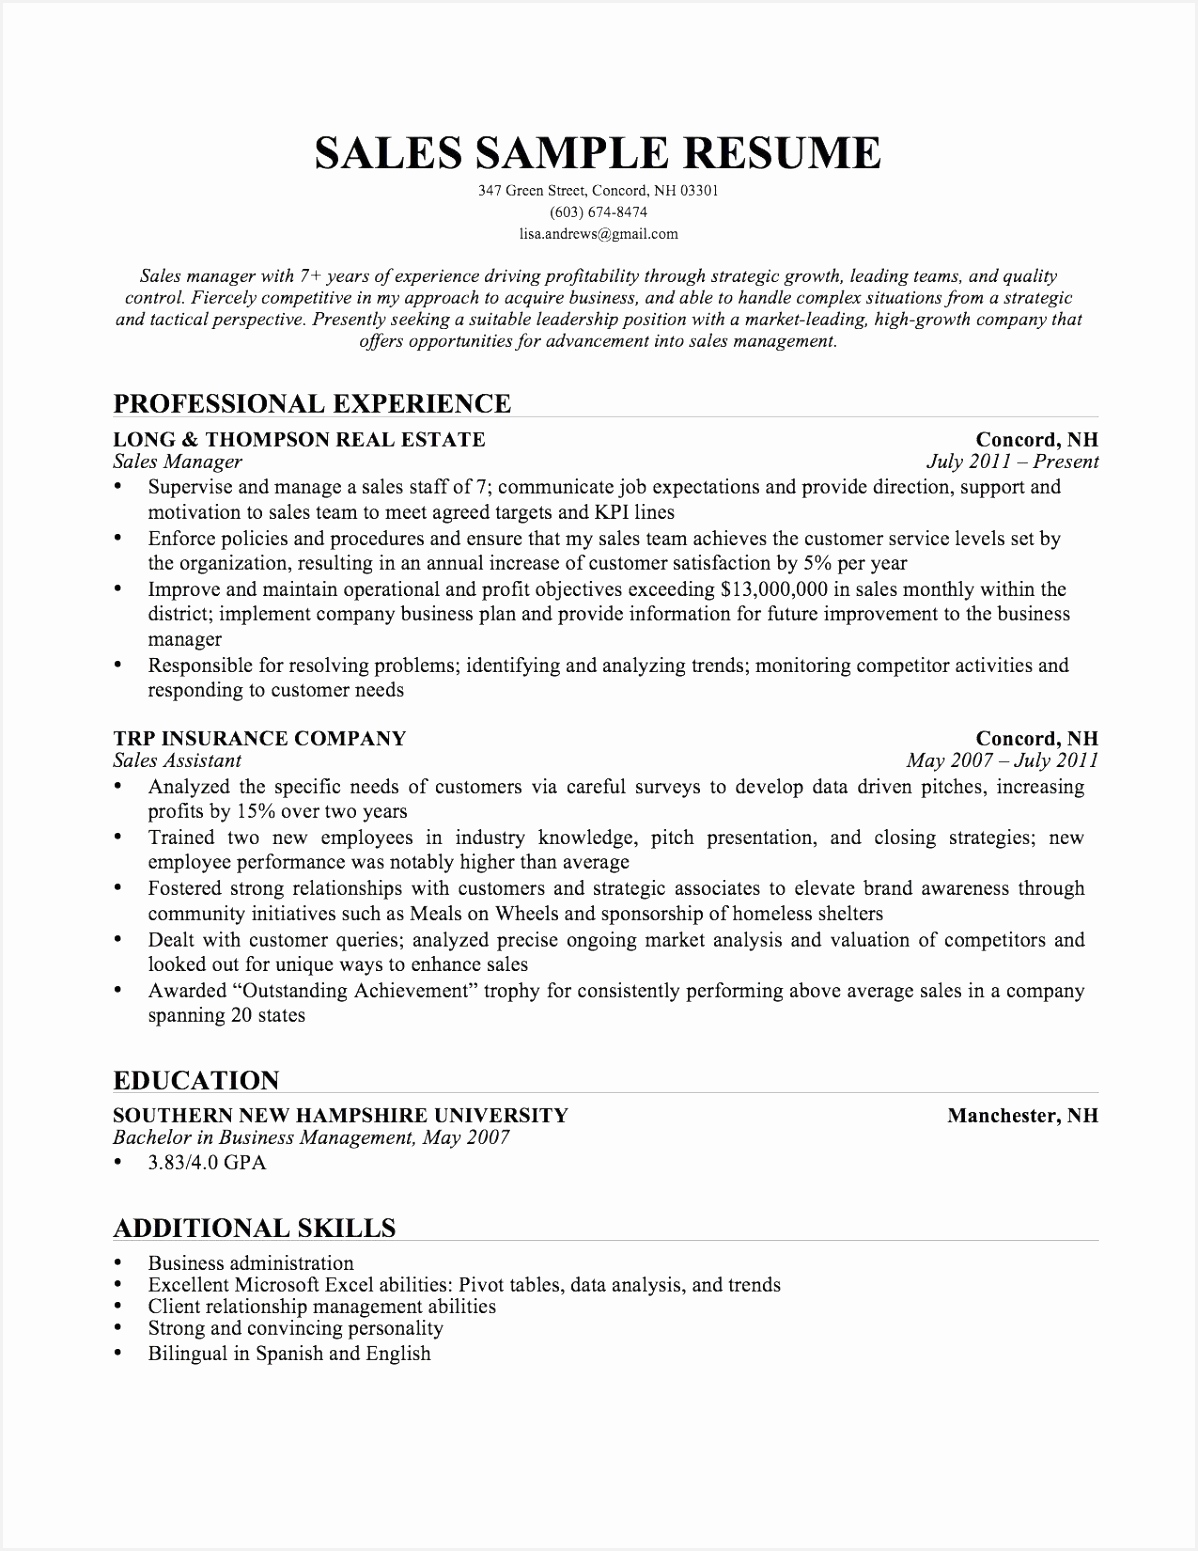 Resume Performa Ydagd Best Of Resume Sample for High School Student Archives Wattweiler org New Of Resume Performa Ydagd Best Of Resume Sample for High School Student Archives Wattweiler org New